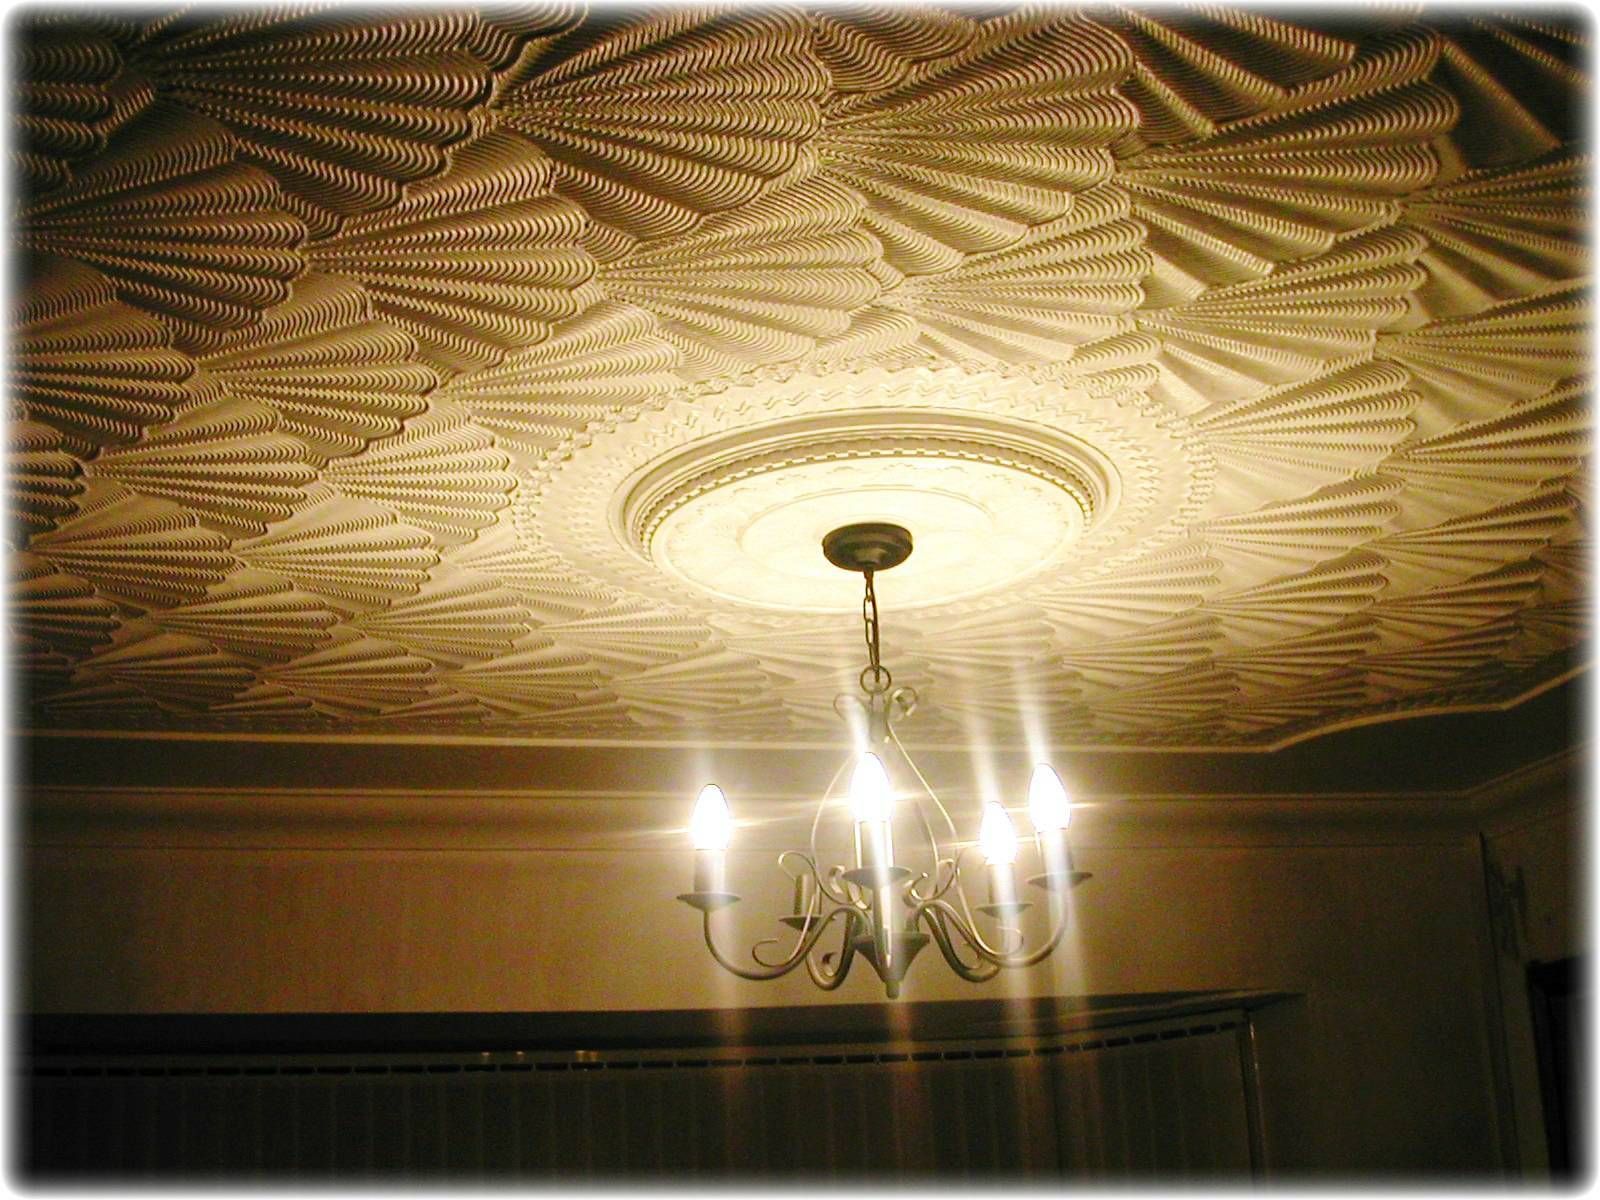 Creative Drywall Textures: How to Cure Porous Ceilings and Walls ...